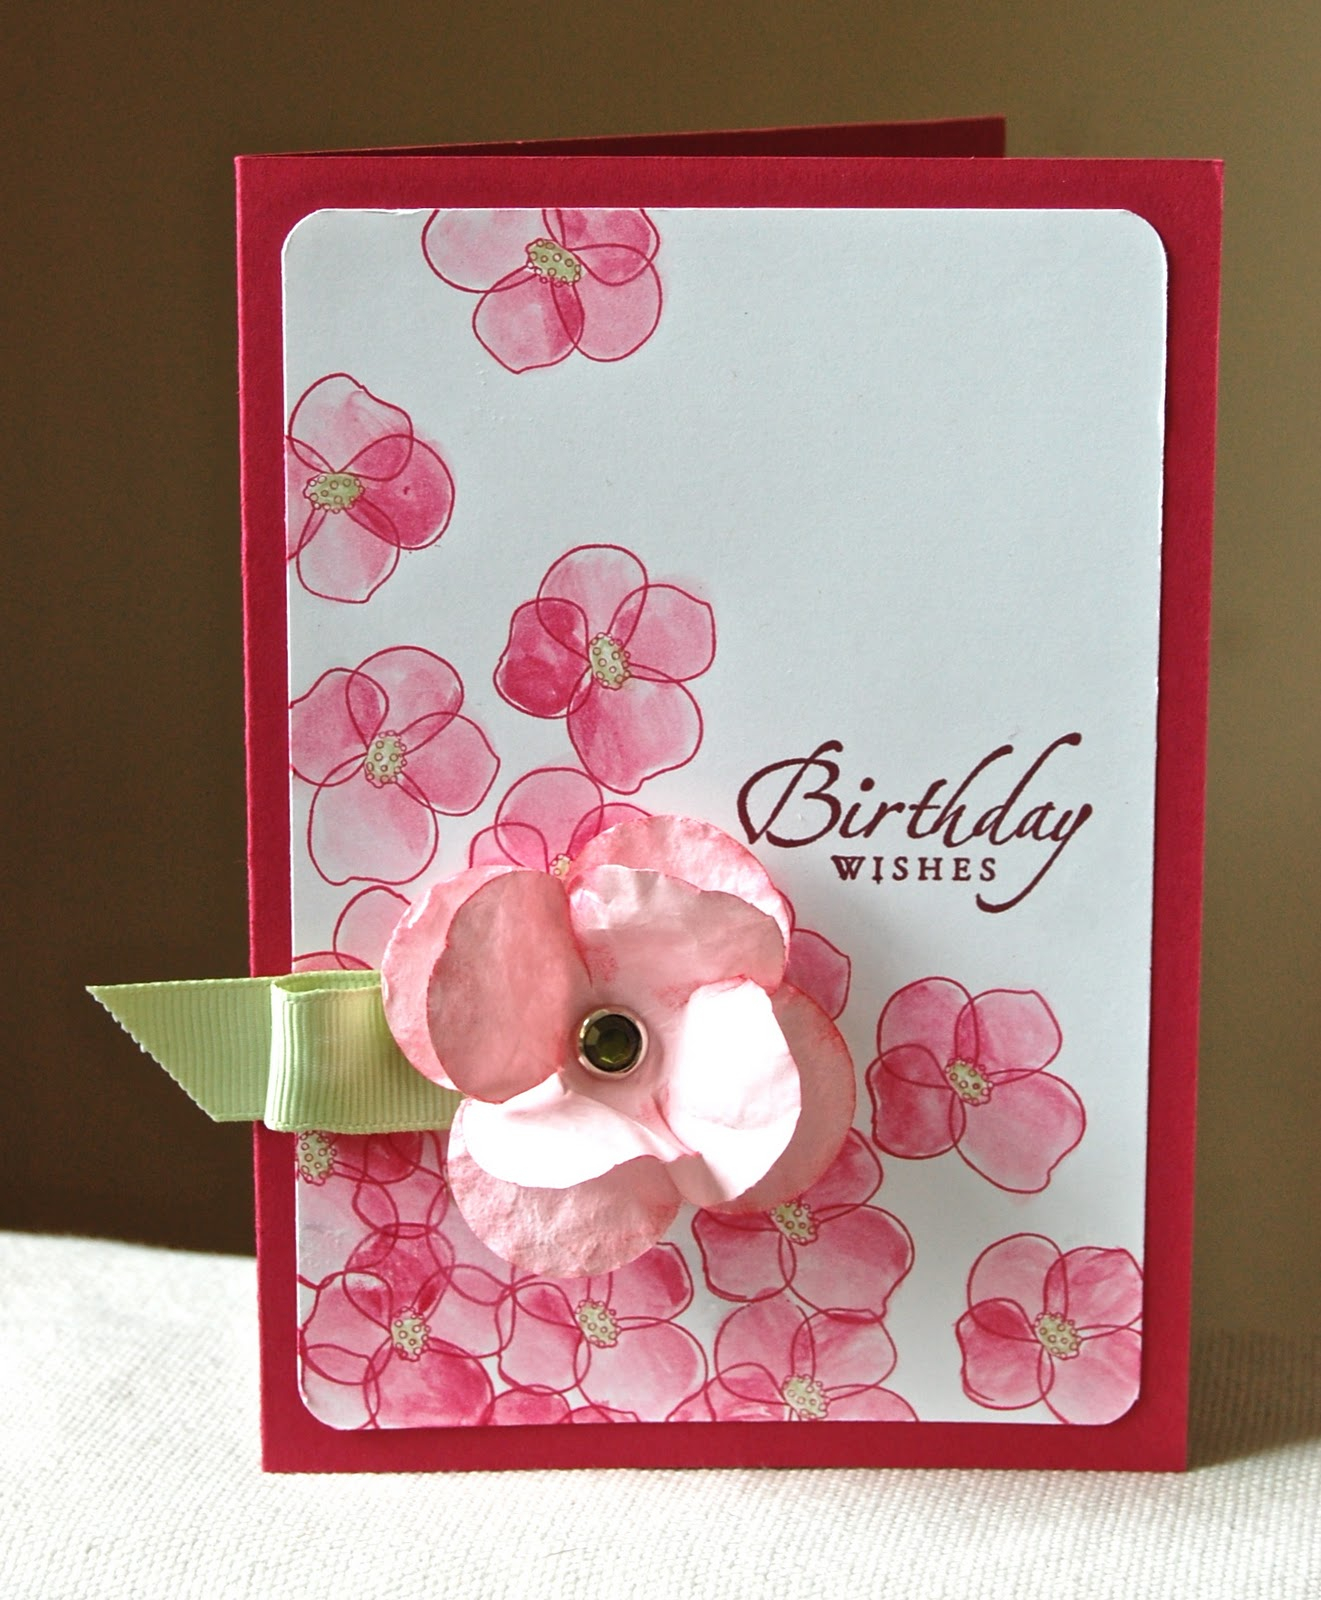 Ideas For Making Birthday Cards At Home Birthday Ideas Feminine Making Birthday Cards At Home Great